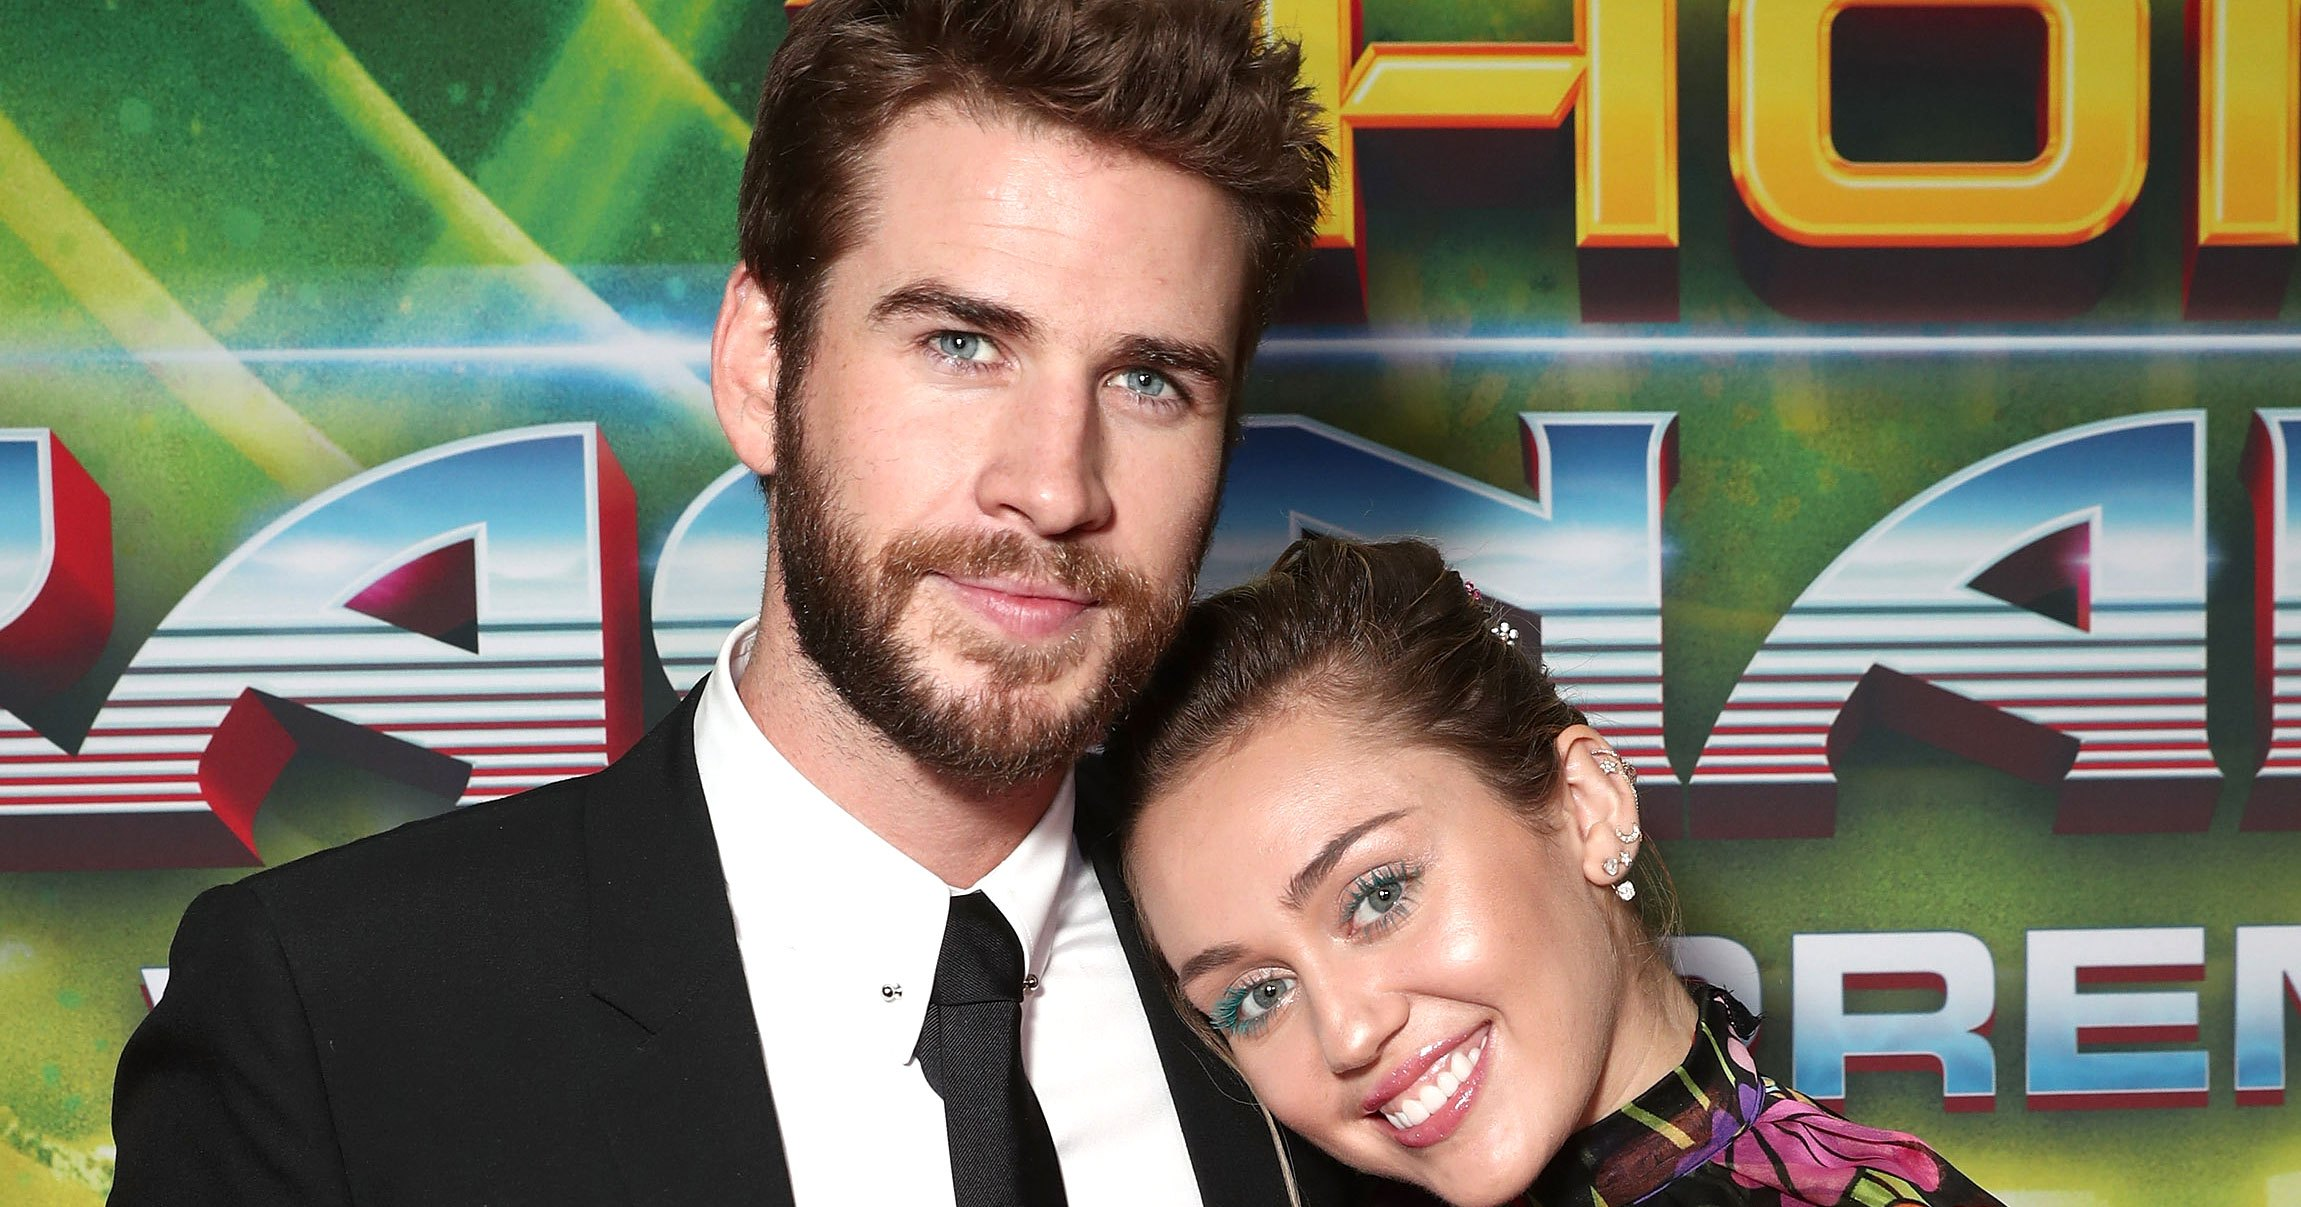 Miley Cyrus Is 'So Happy' With Husband Liam Hemsworth: They 'Want to Have a Family'